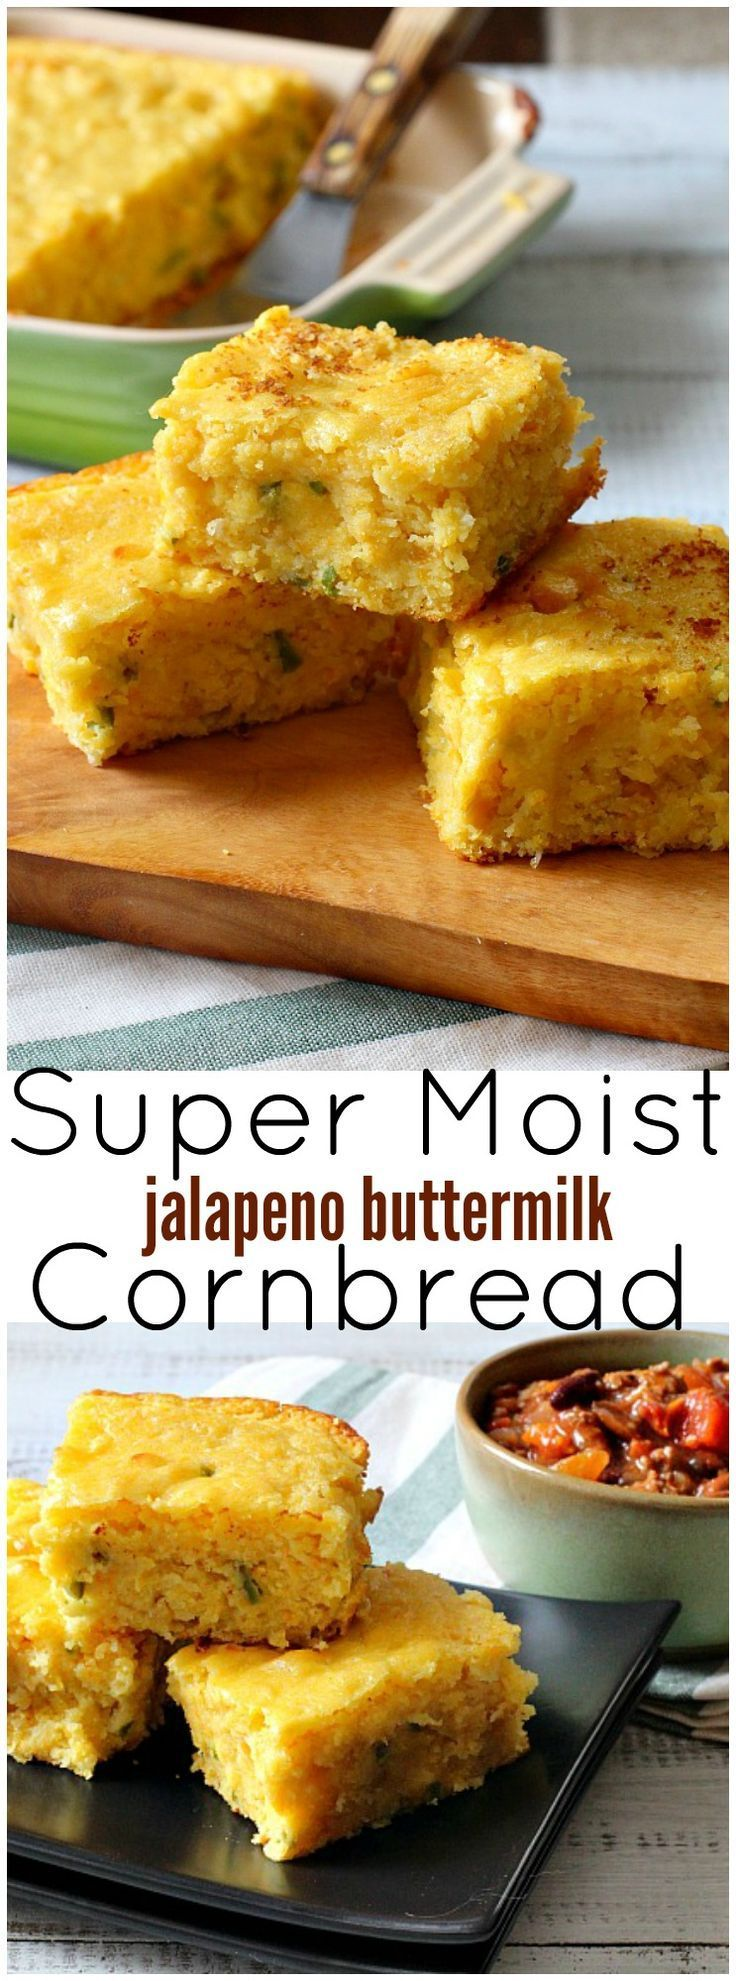 Super Moist Jalapeno Buttermilk Cornbread Recipe Recipe Super Moist Cornbread Recipes Corn Bread Recipe